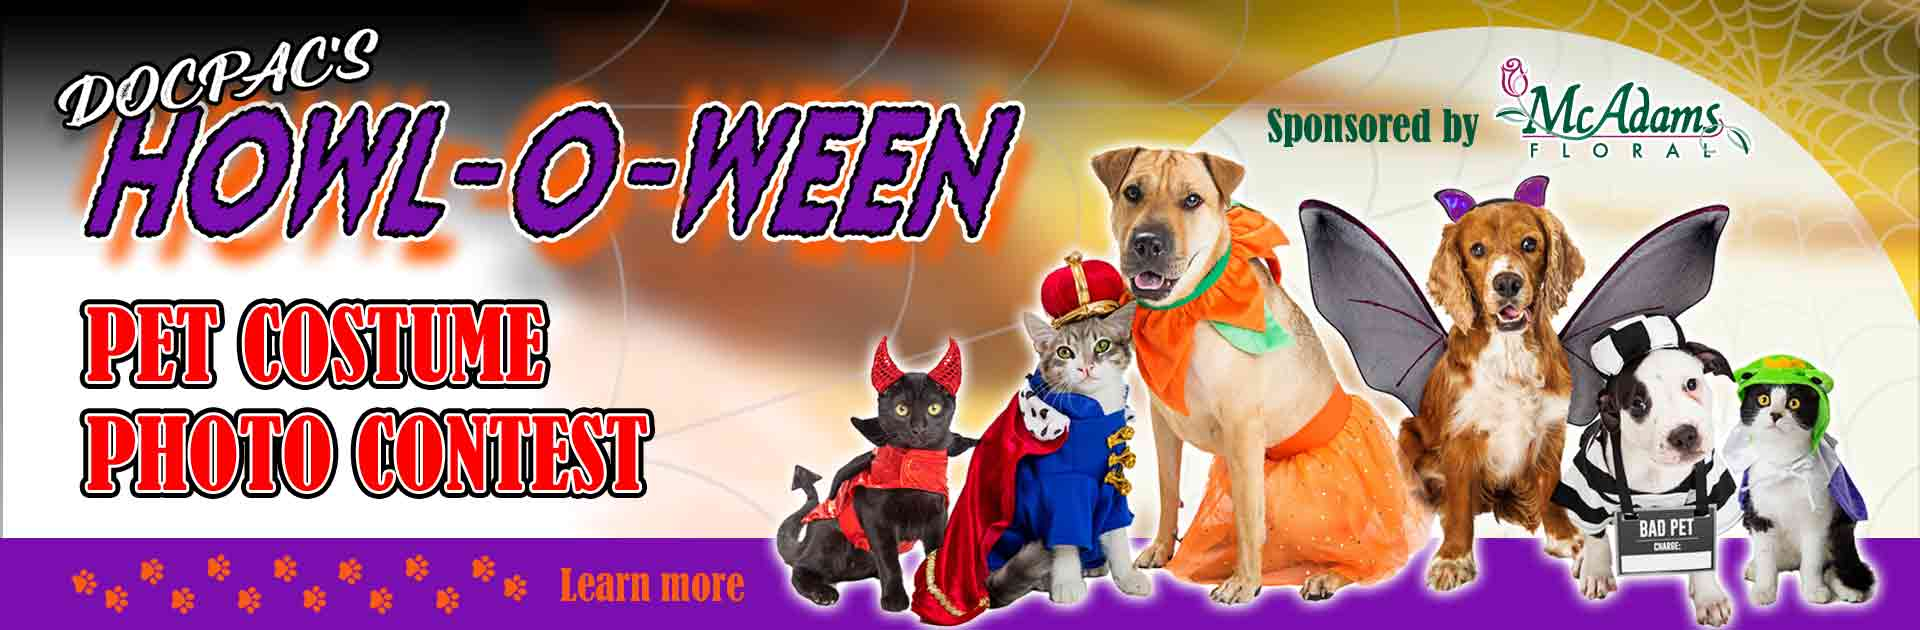 DOCPAC' Howl-O-Ween Pet Costume Photo Contest Sponsored By Mc Adams